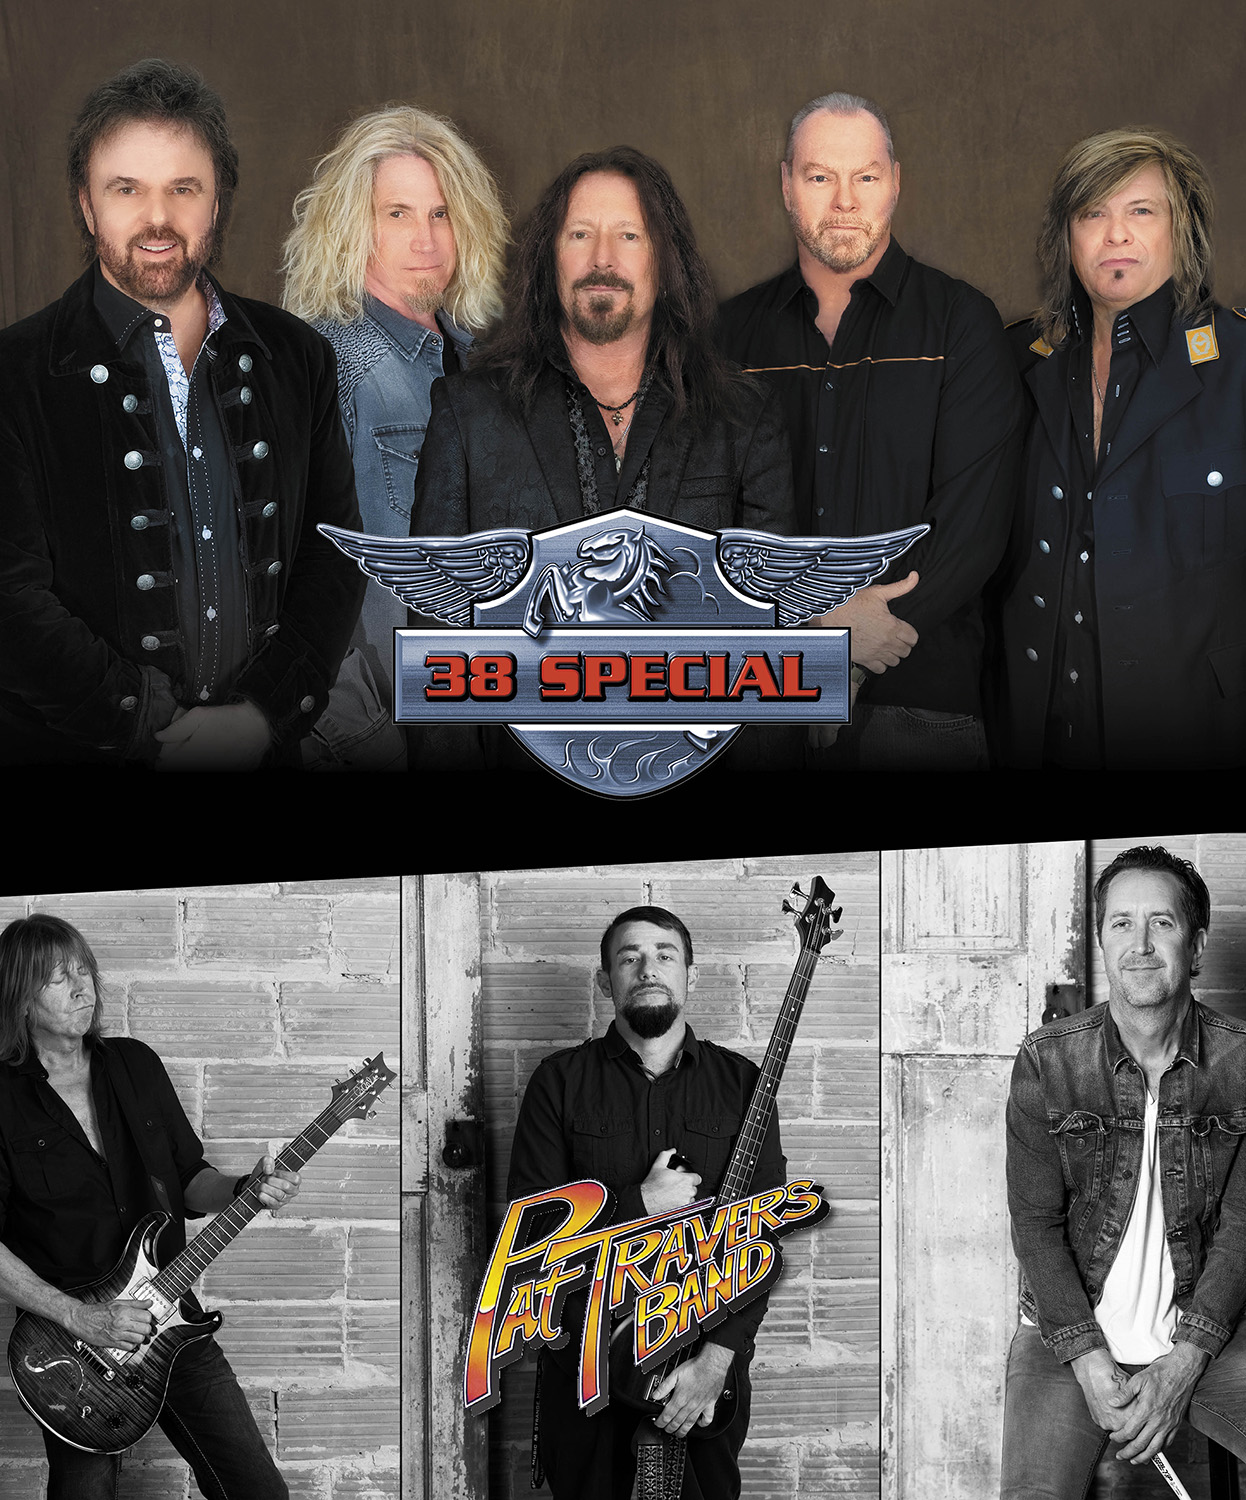 38 special pat travers band concert toledo july 23 2021